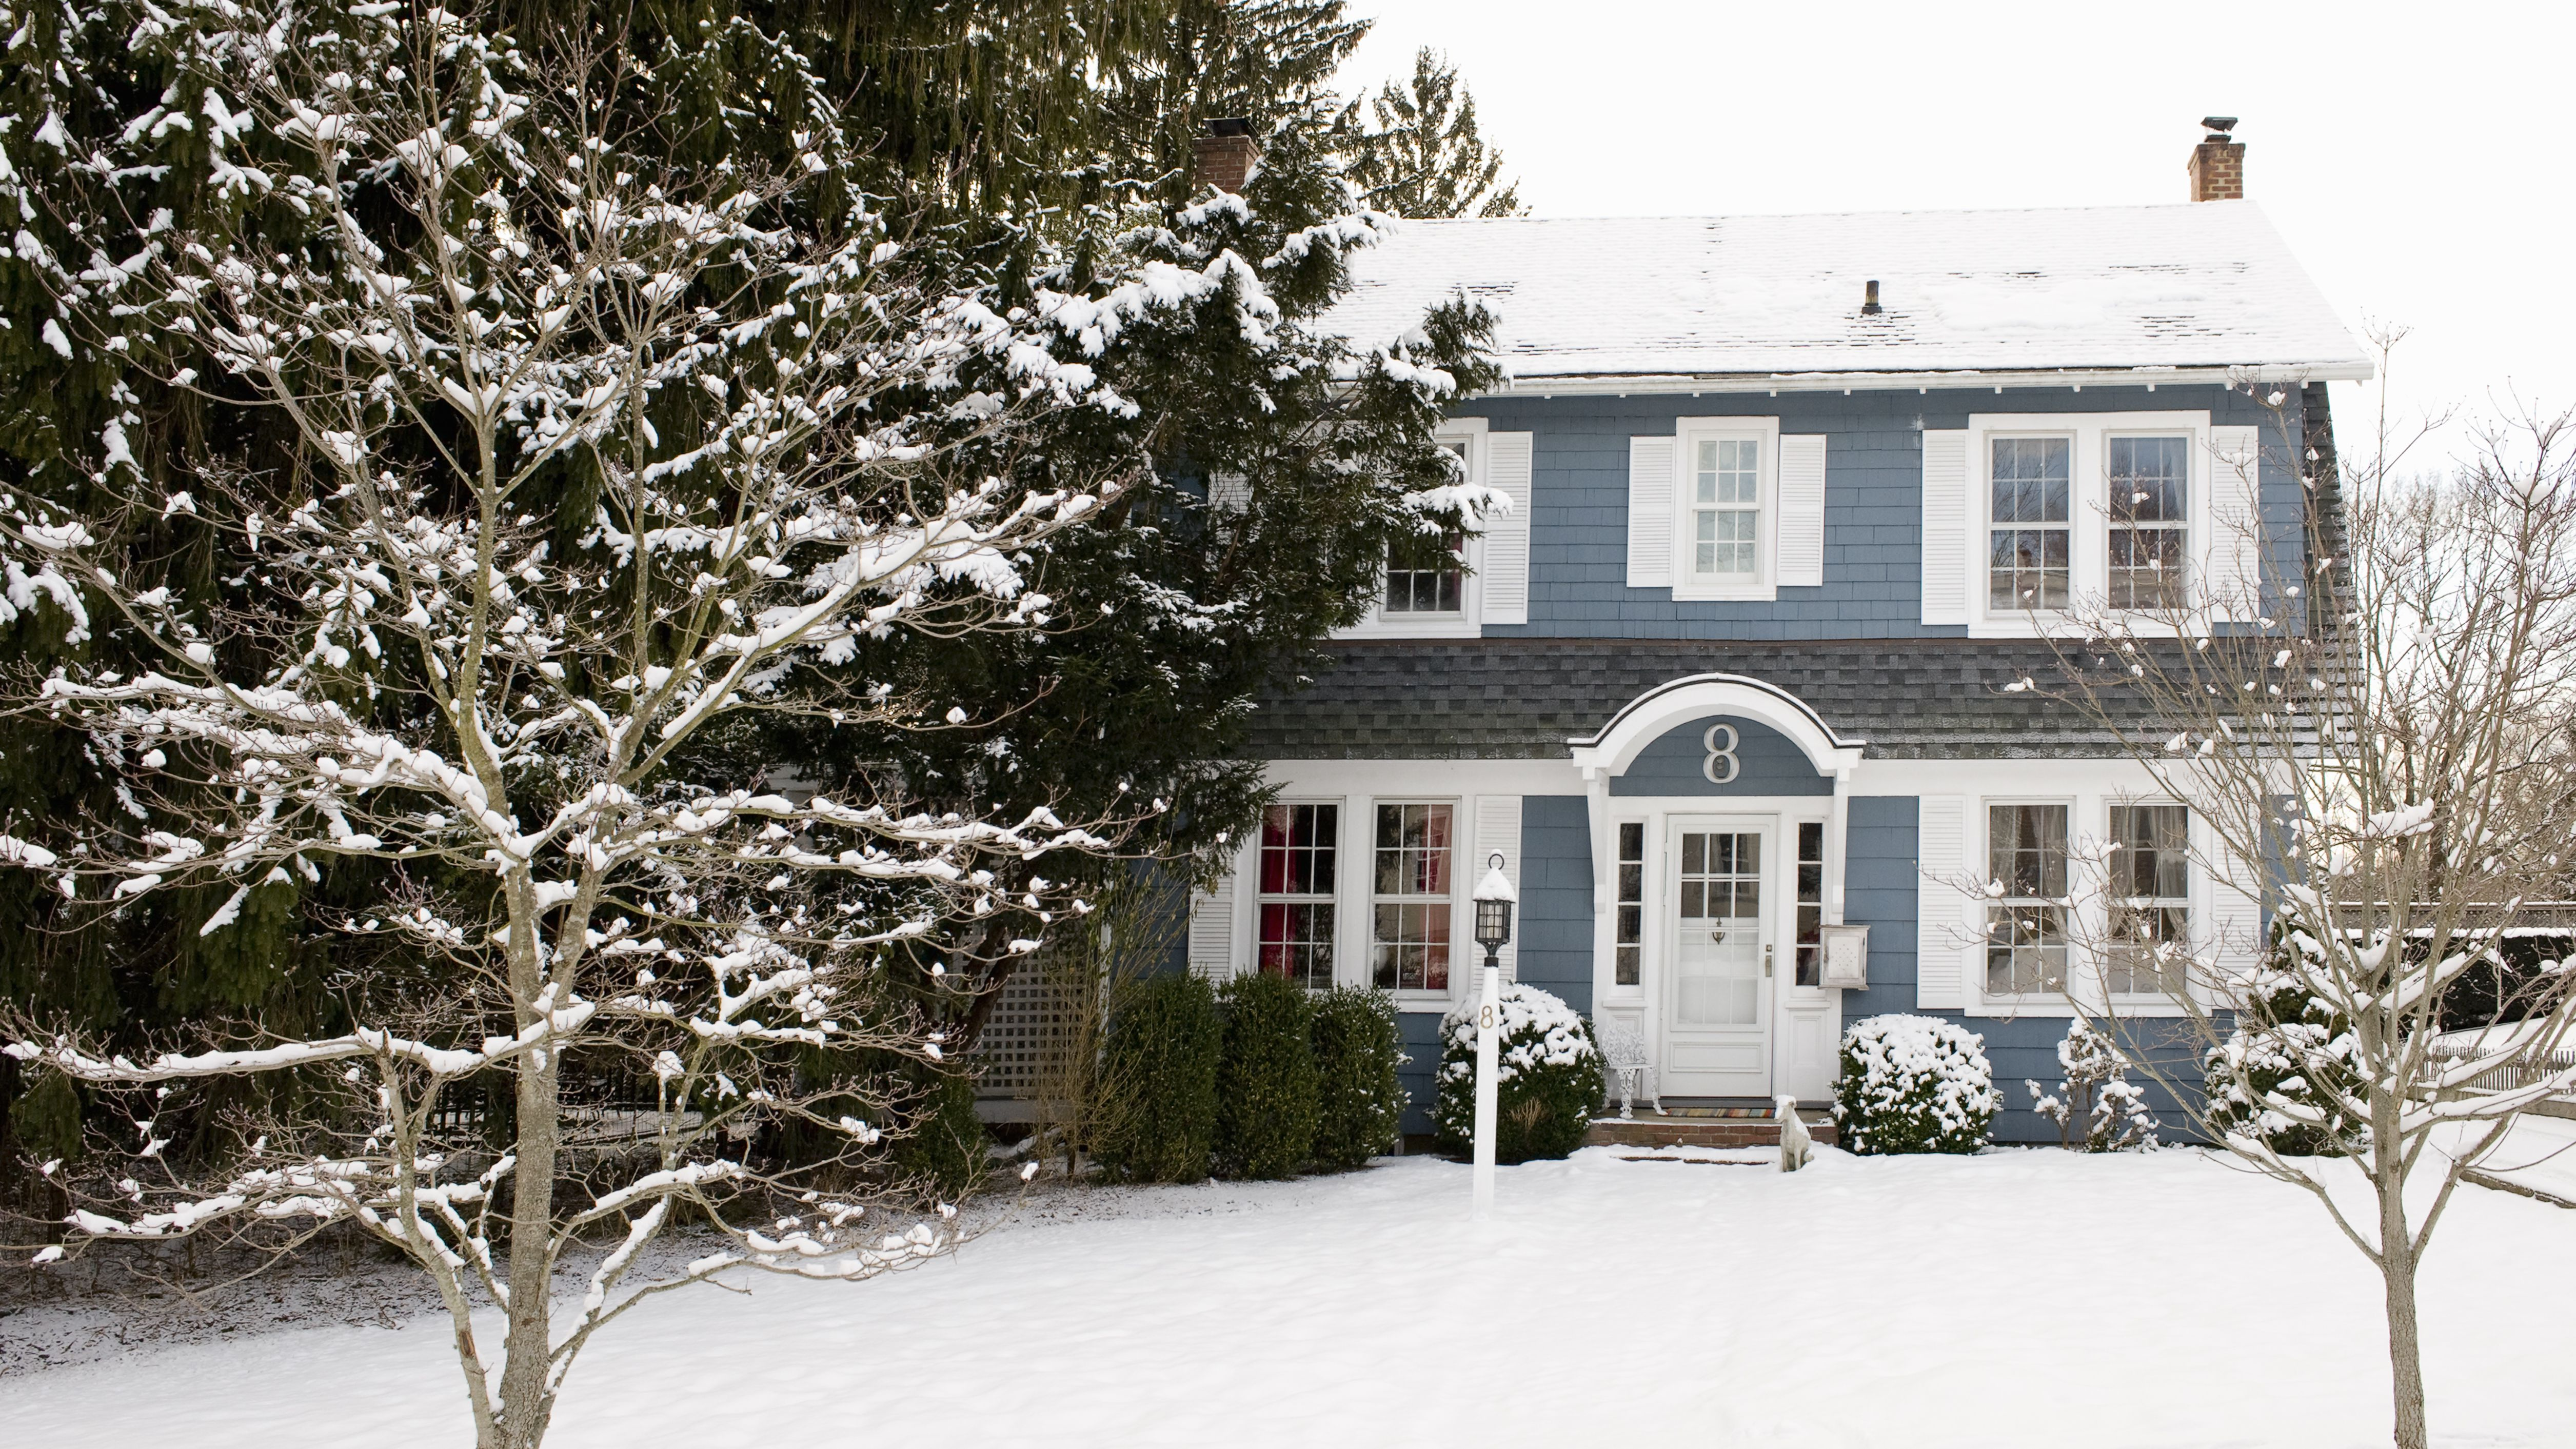 7 Reasons to Buy a House in the Winter